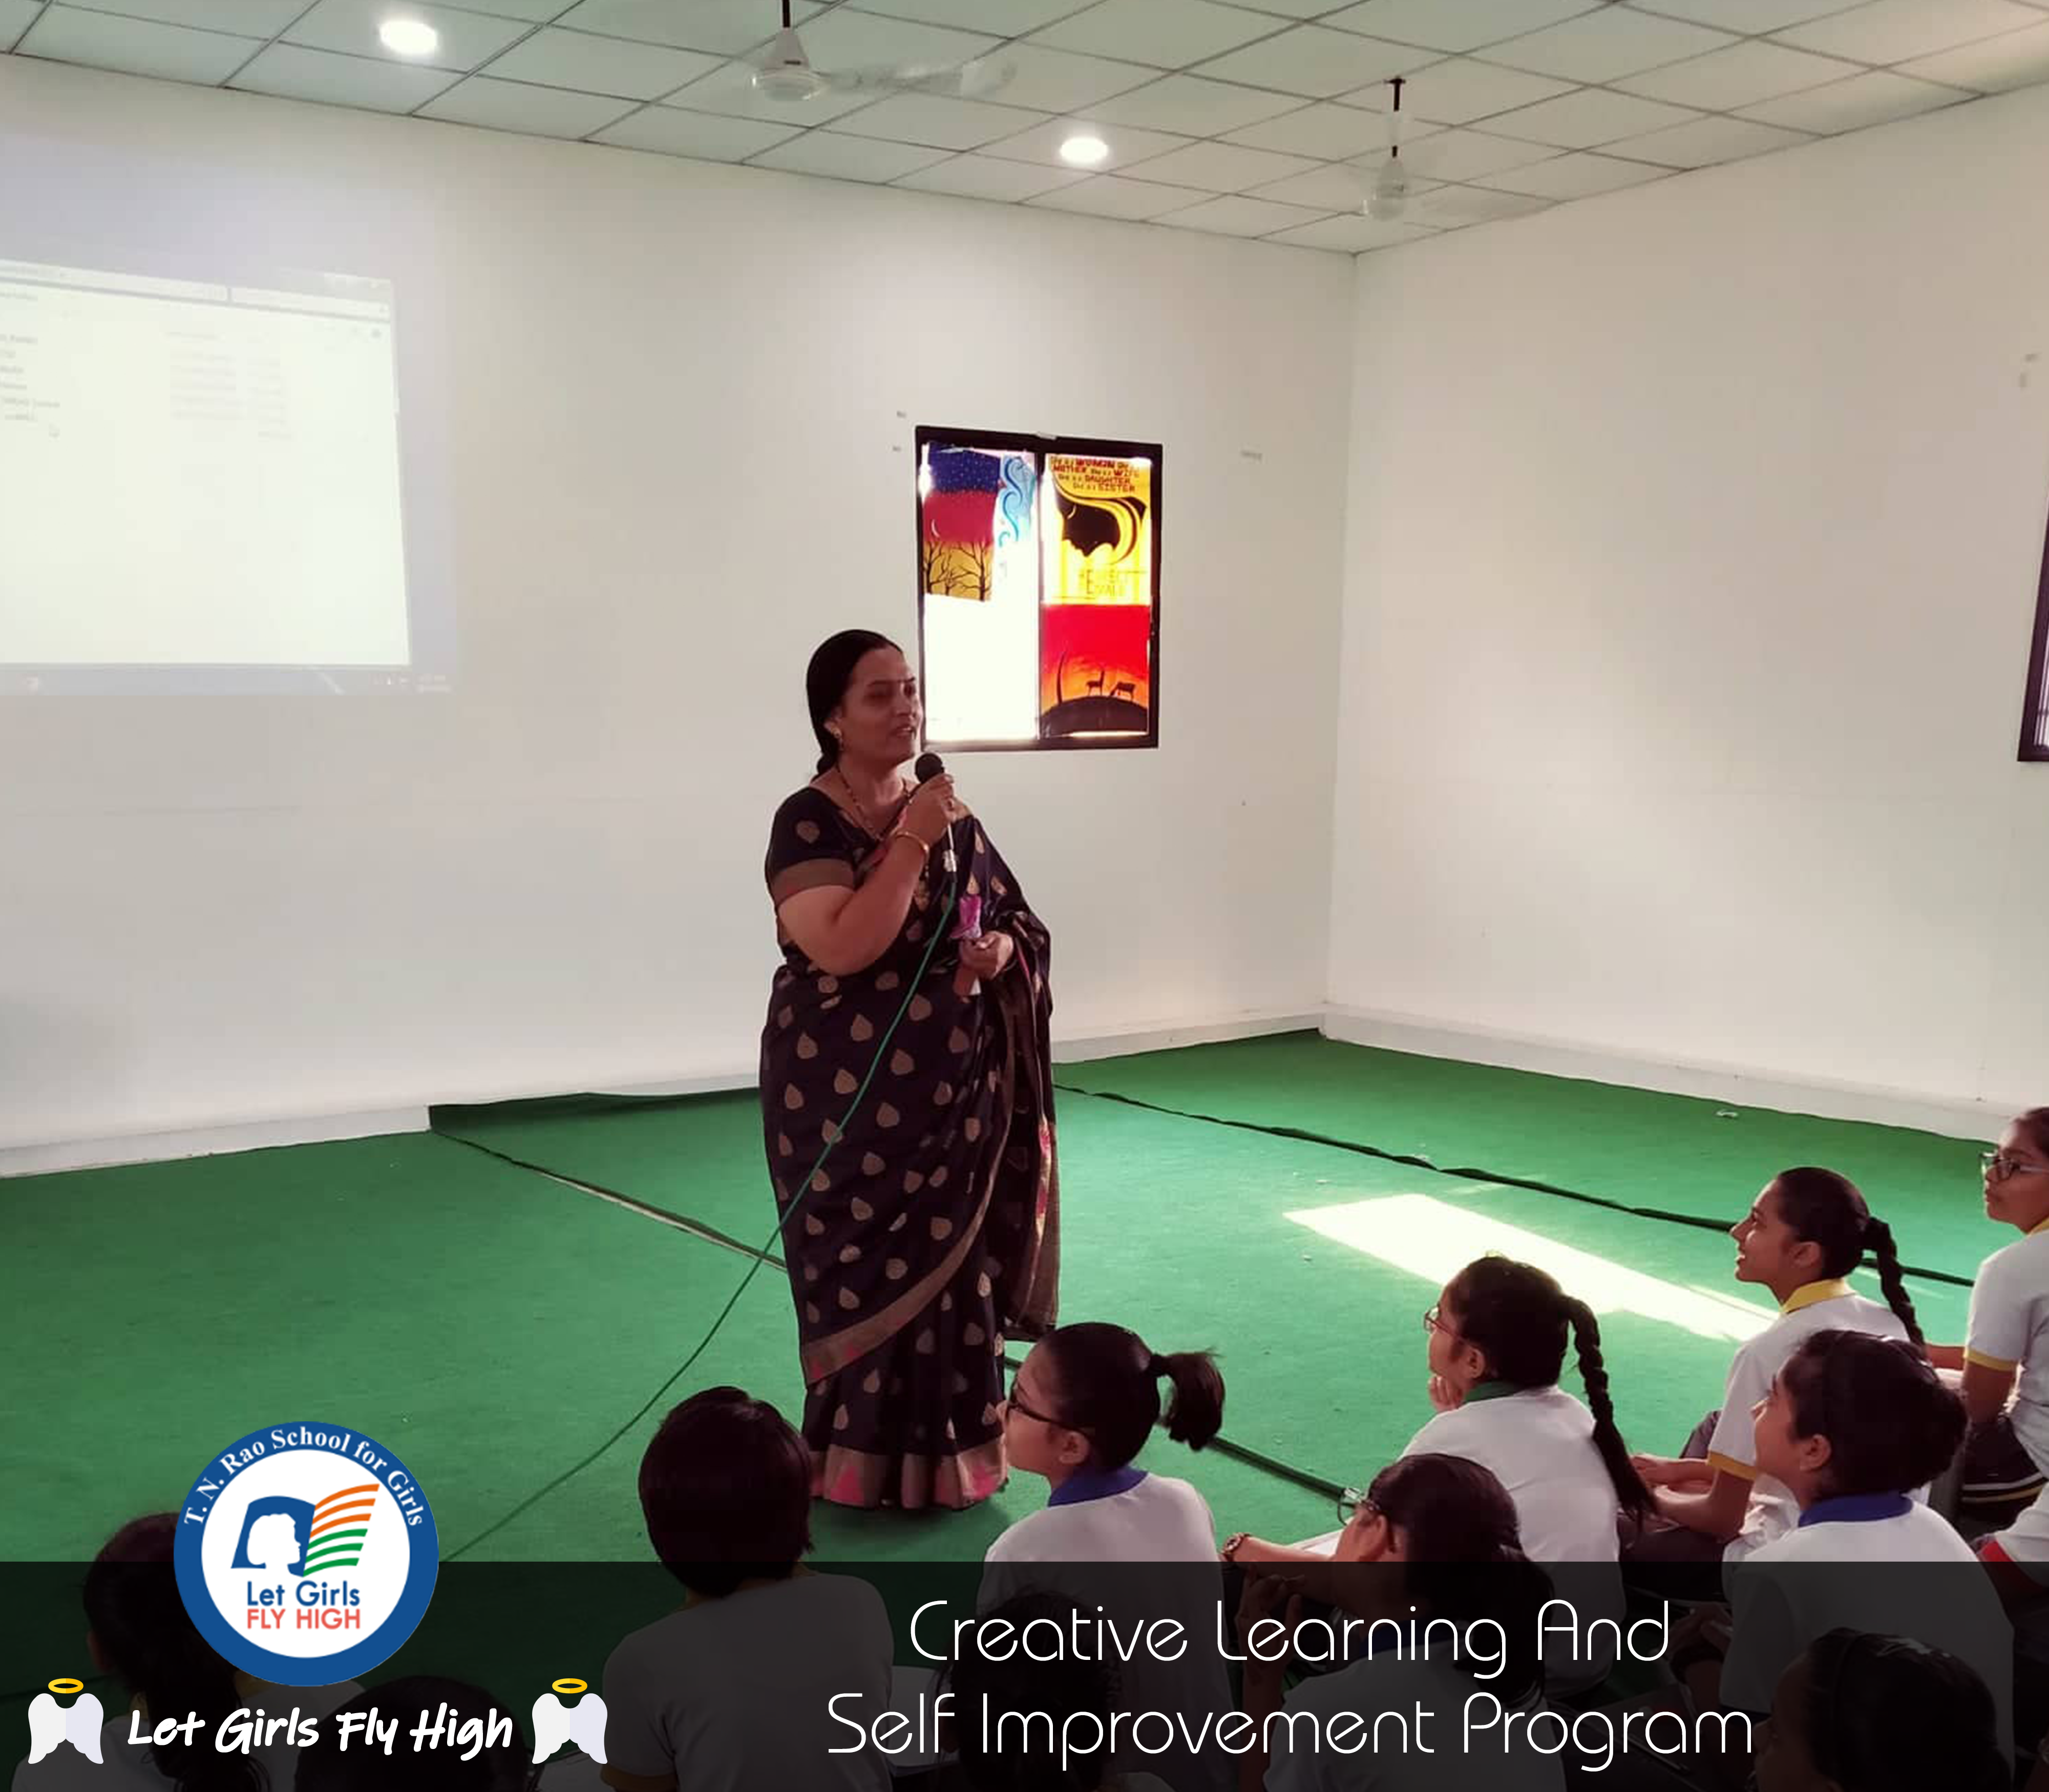 Workshop on Creative Learning